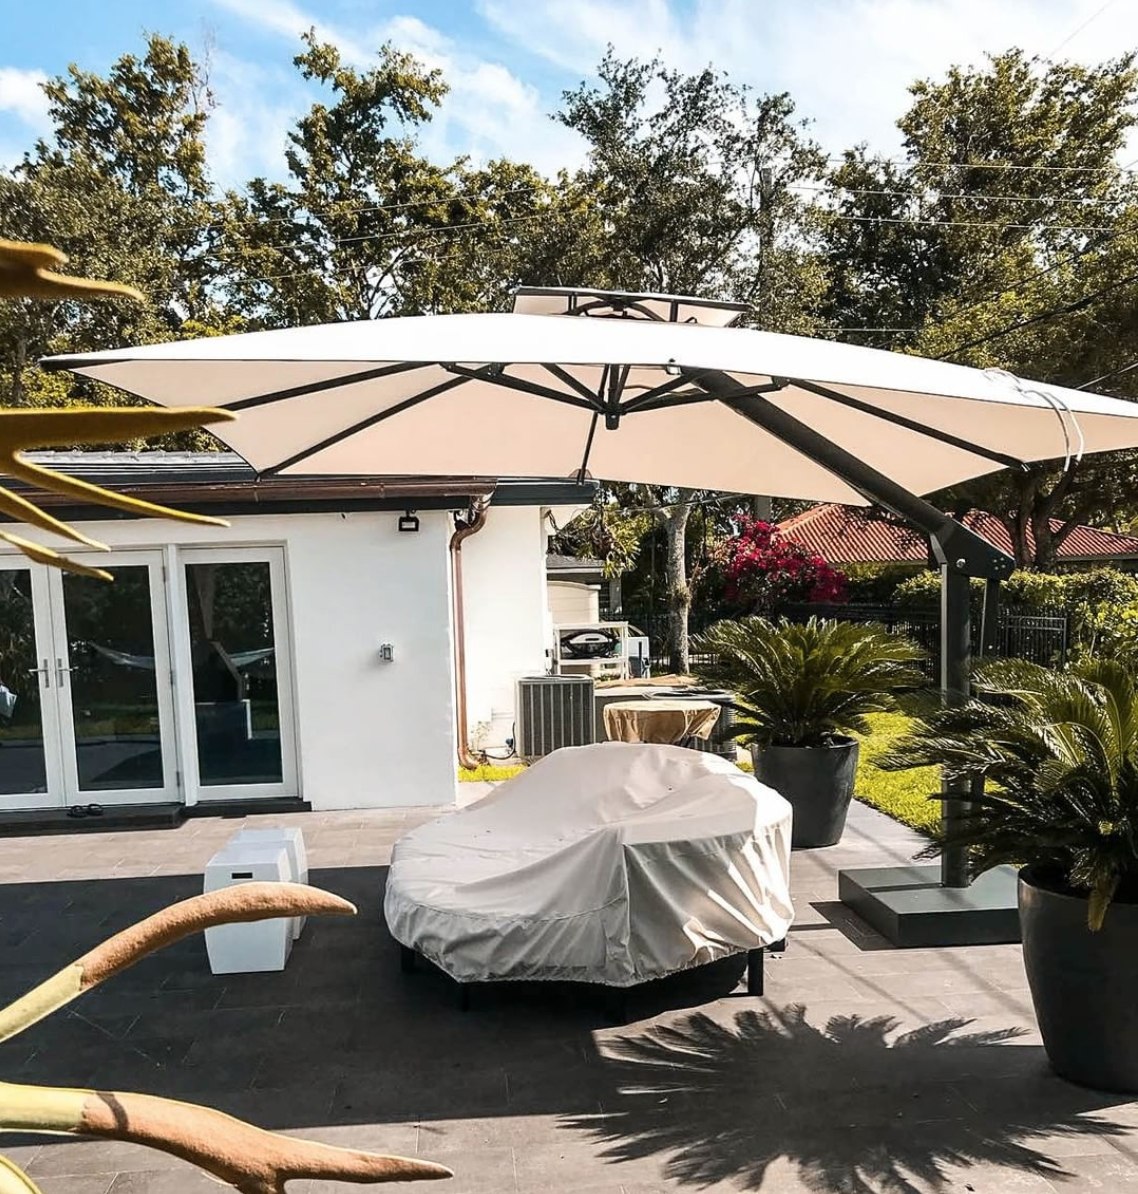 The Complete Buyers Guide For Large Patio Umbrellas – Poggesi Usa In Most Up To Date Large Patio Umbrellas (View 2 of 20)